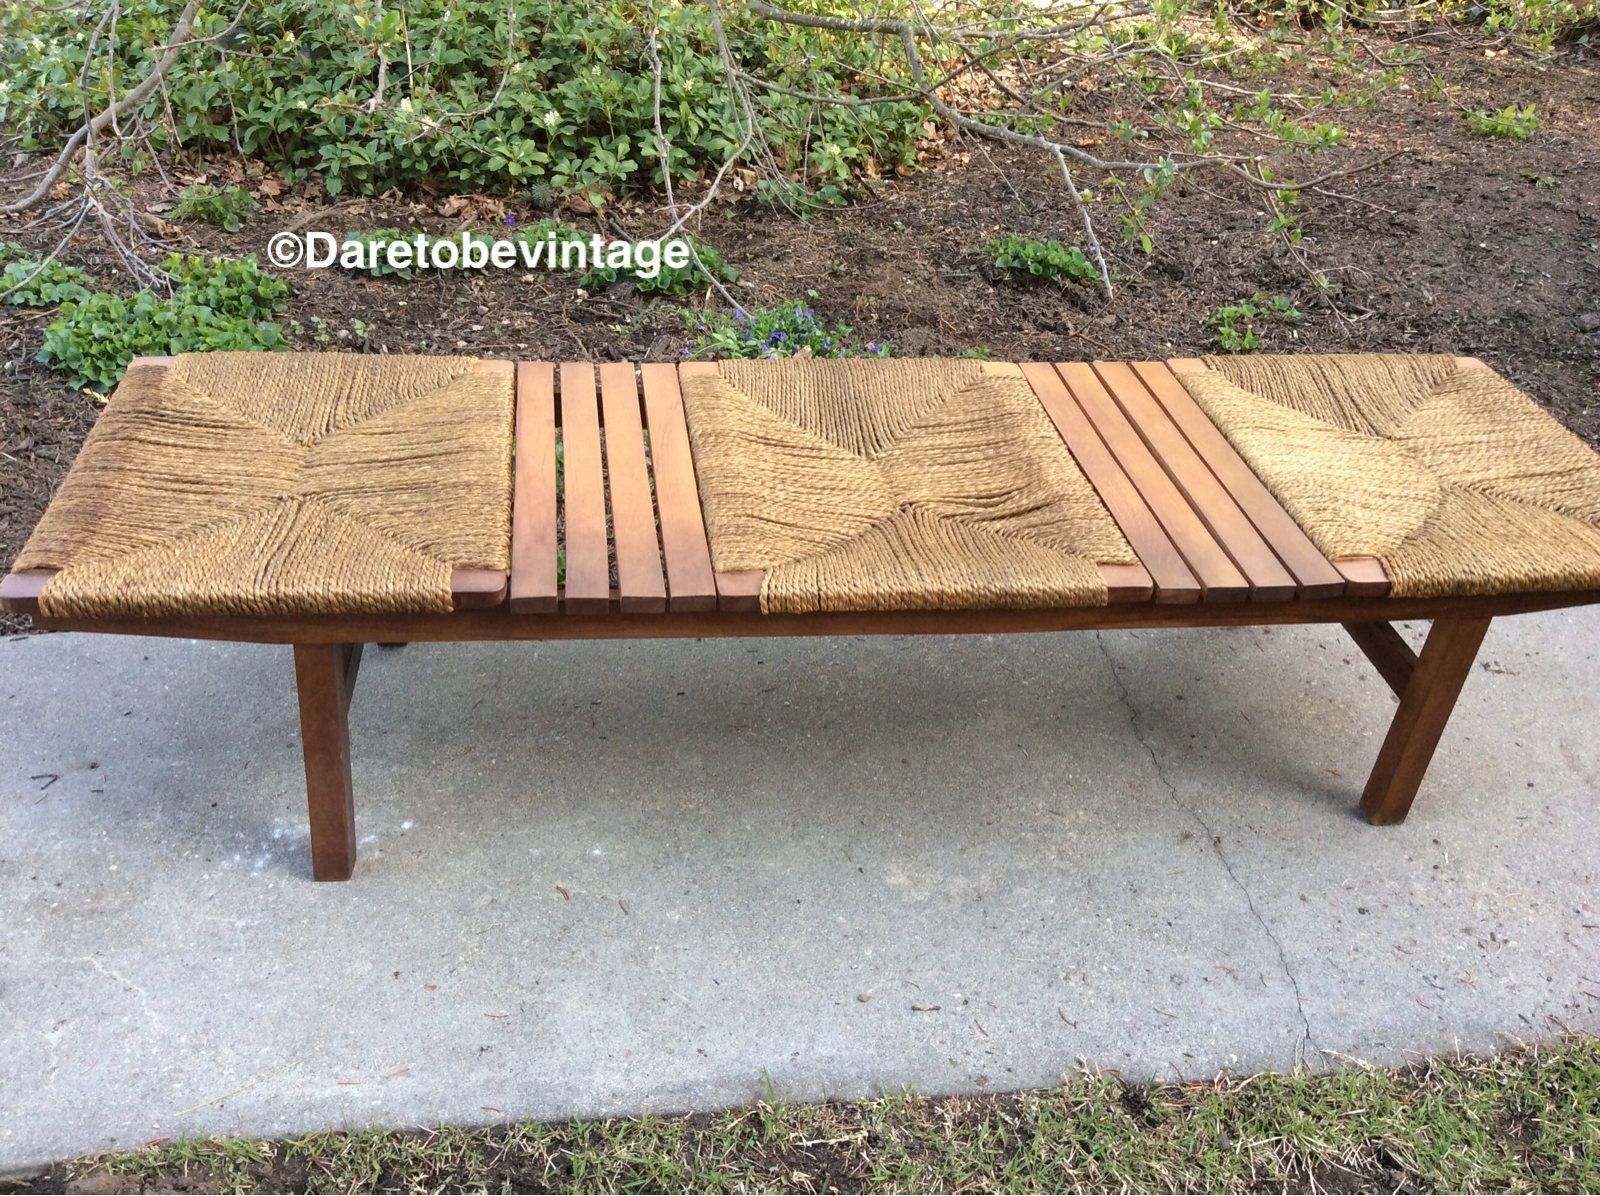 Vintage Japanese Mid Century Woven Jute And Slat Bench Mid Century Modern Jute Bench 3 Seat Japanese Benc Vintage Japanese Mid Century Modern Vintage Bench